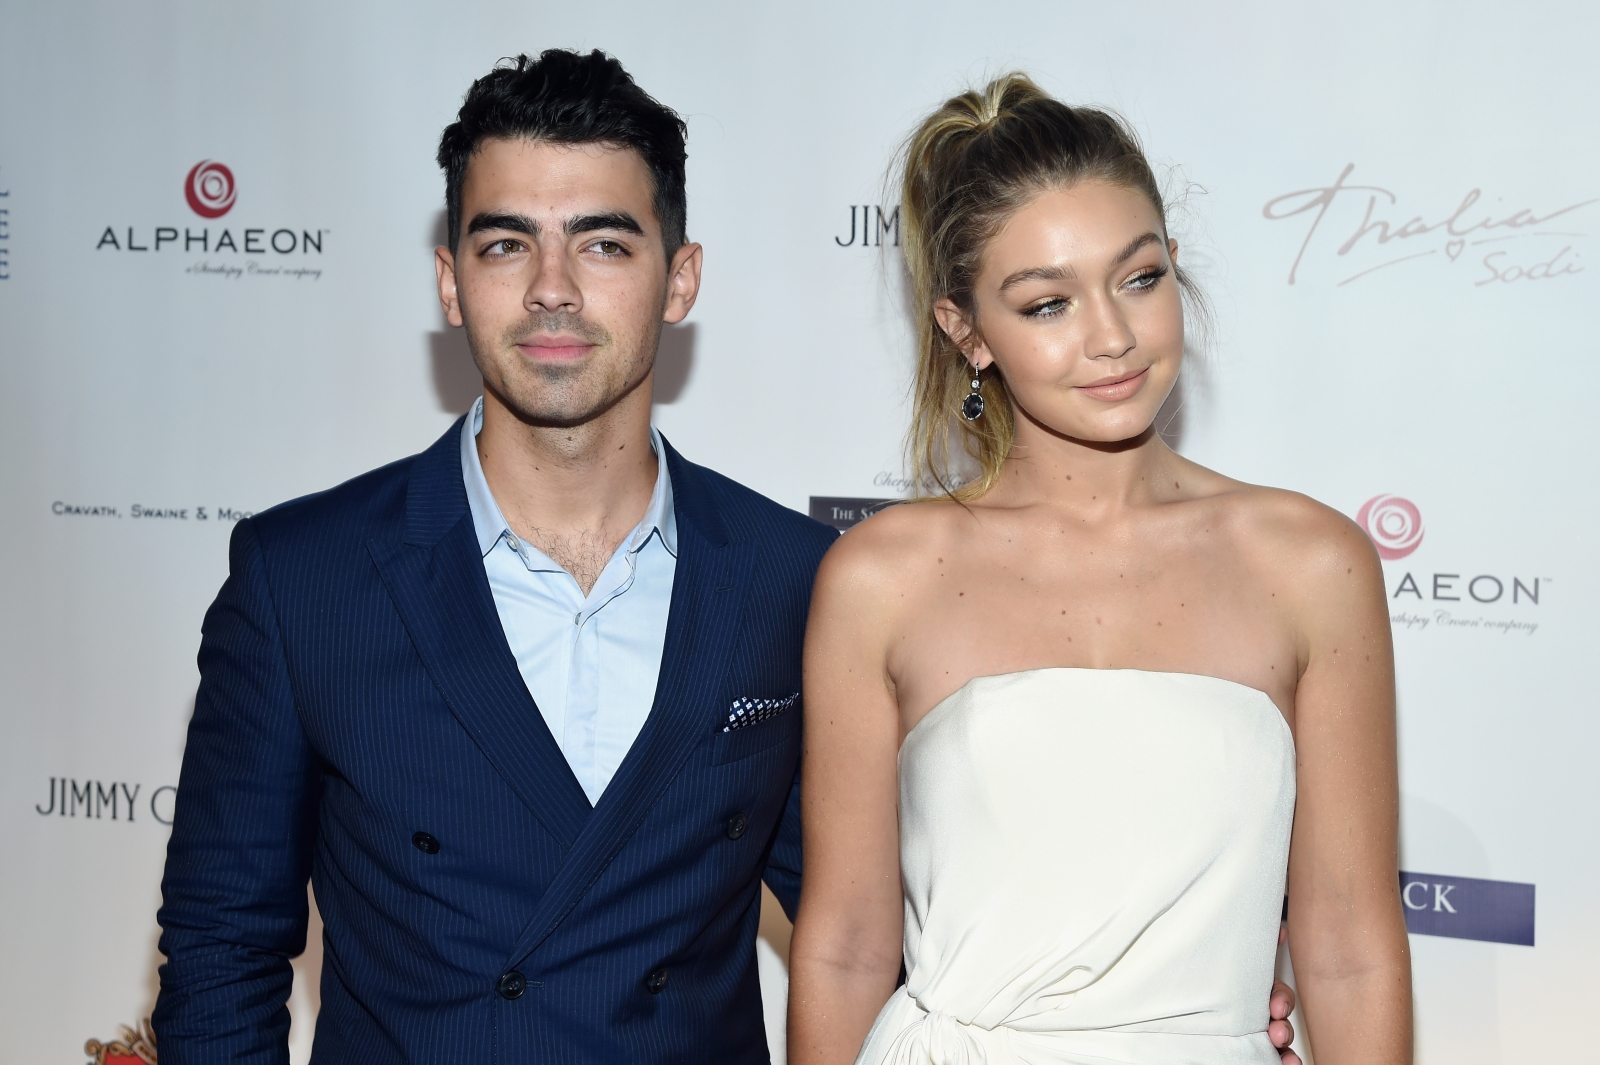 Joe Jonas and Gigi Hadid